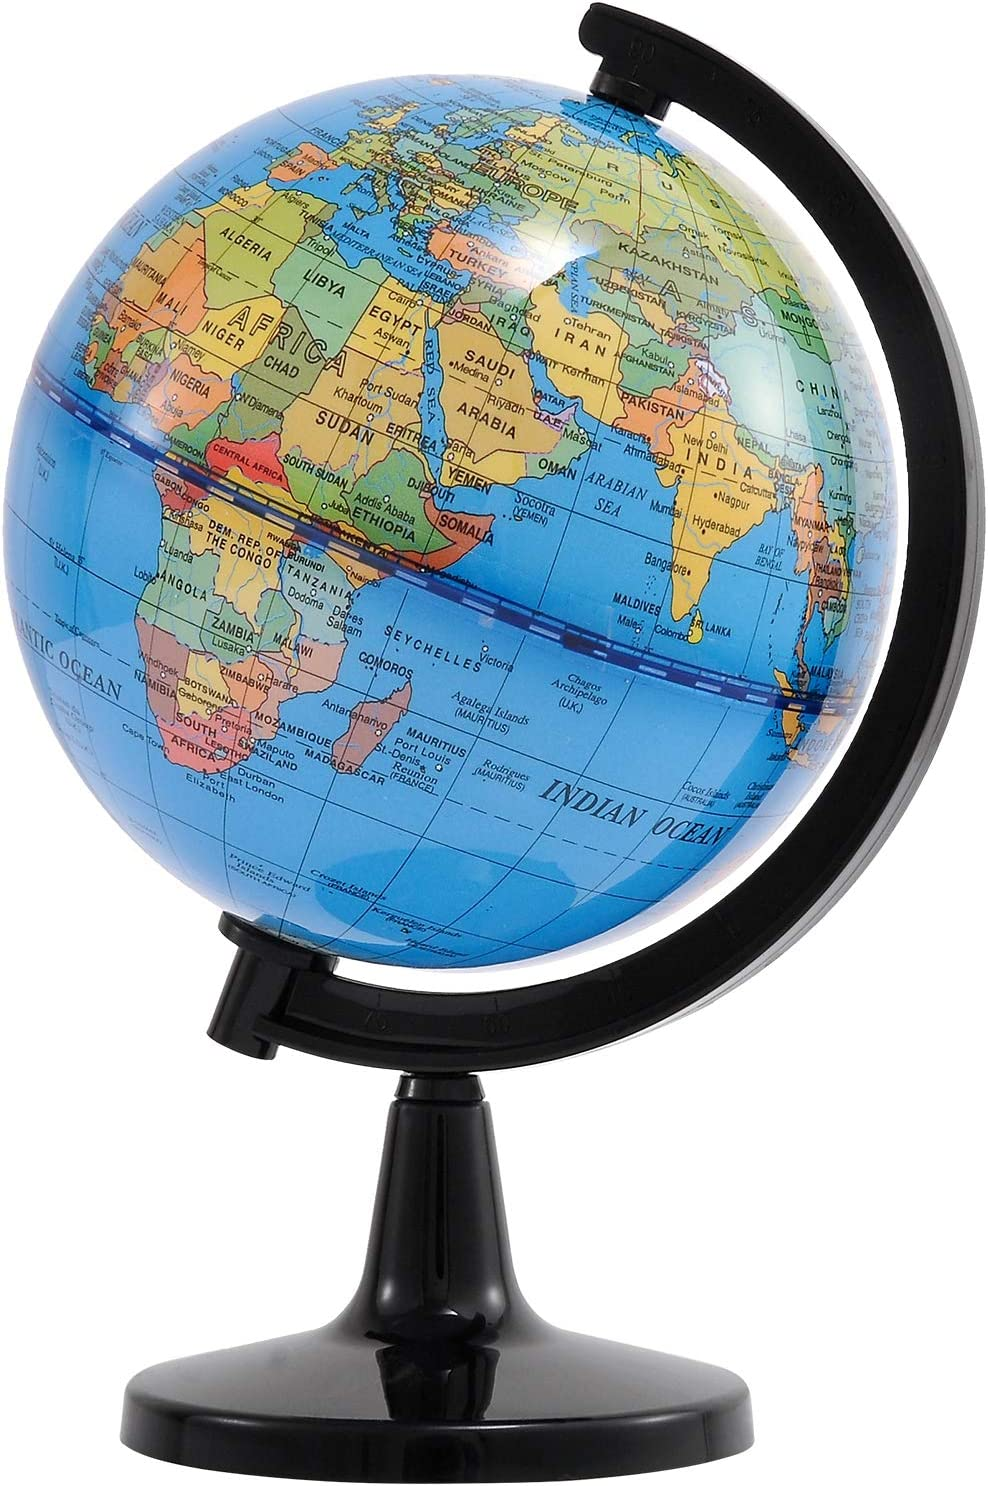 Wizdar 4'' World Globe for Kids Learning, Educational Rotating World Map Globes Mini Size Decorative Earth Children Globe for Classroom Geography Teaching, Desk & Office Decoration-4 inch